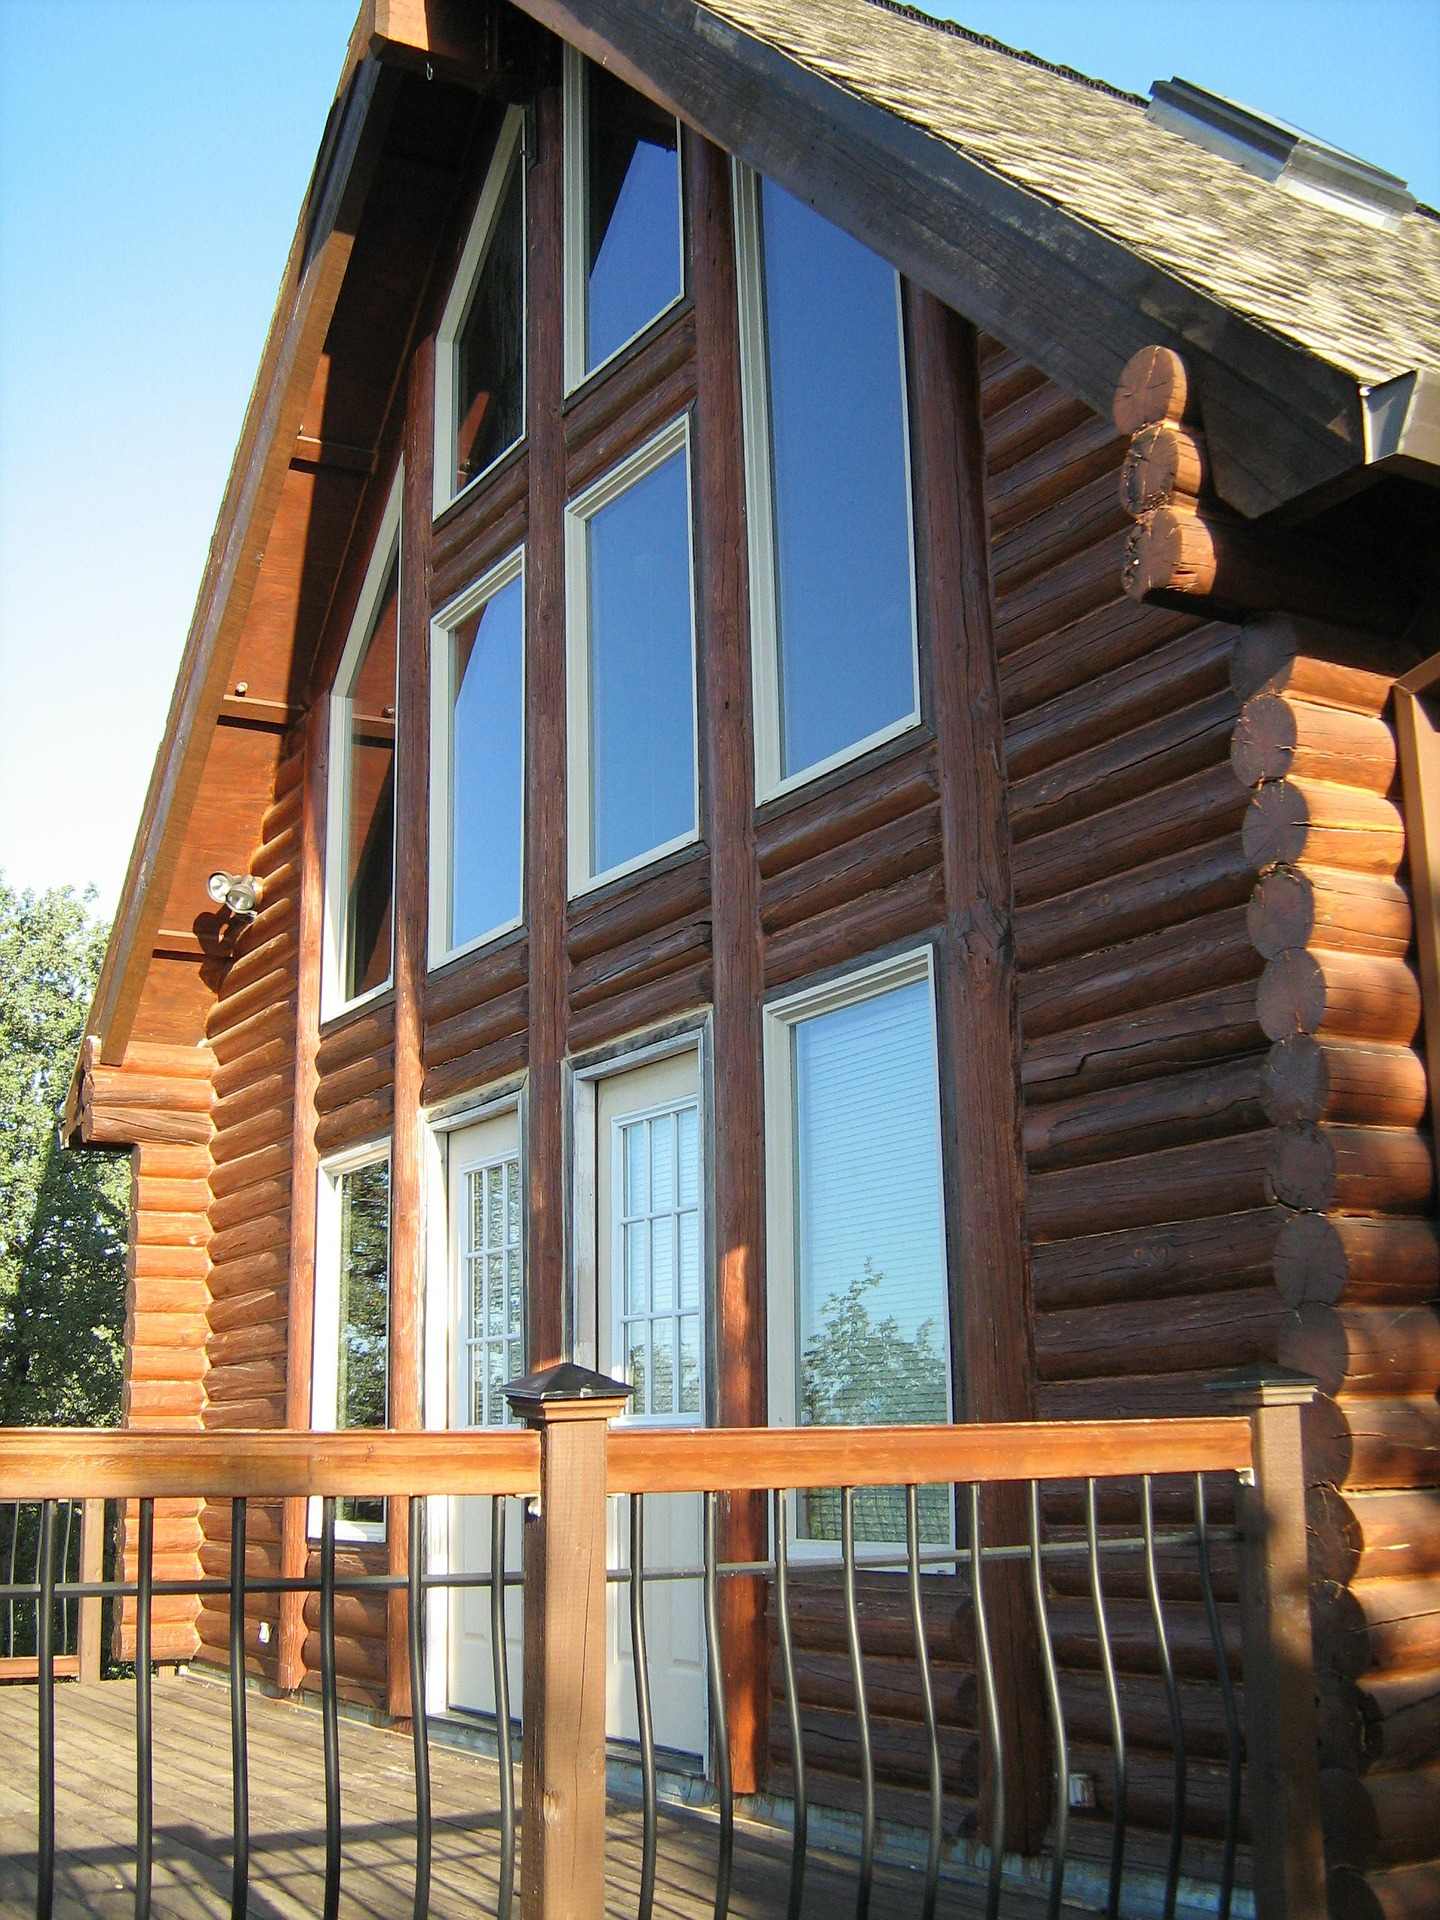 Efficient cabin windows will save money over the long-term.